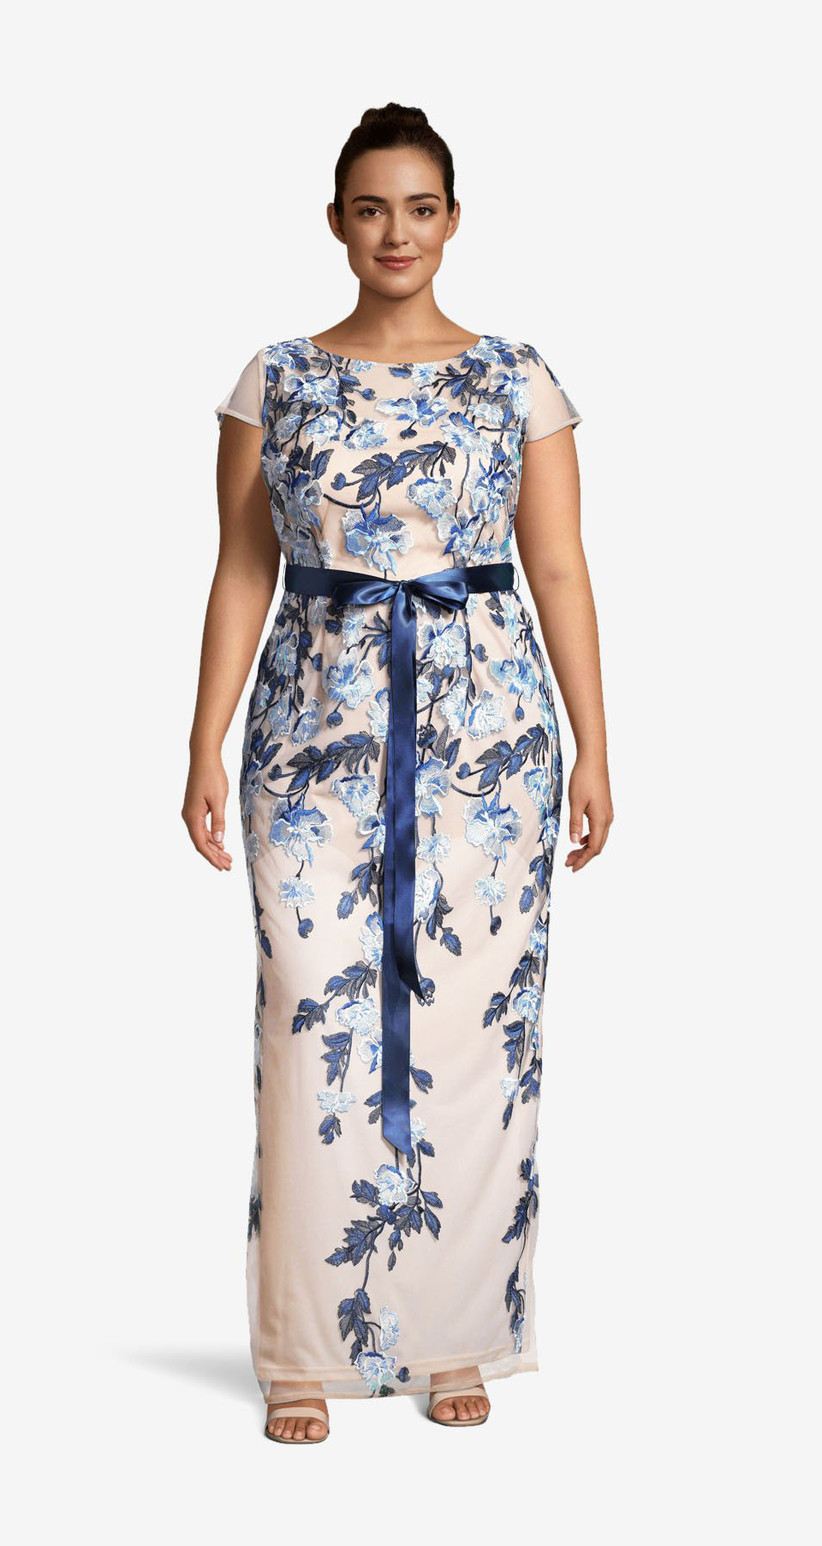 Model wearing nude column floor-length gown with beautiful light and dark blue floral pattern, sheer capped sleeves and blue ribbon around the waist